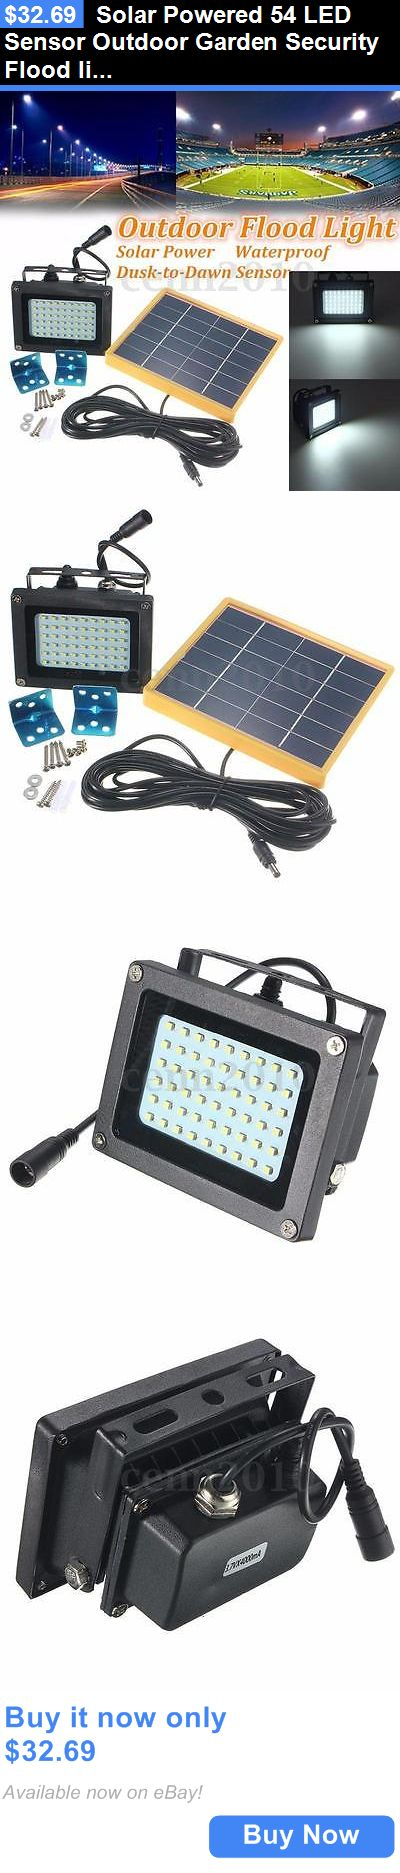 farm and garden: Solar Powered 54 Led Sensor Outdoor Garden Security Flood Light Waterproof Us BUY IT NOW ONLY: $32.69